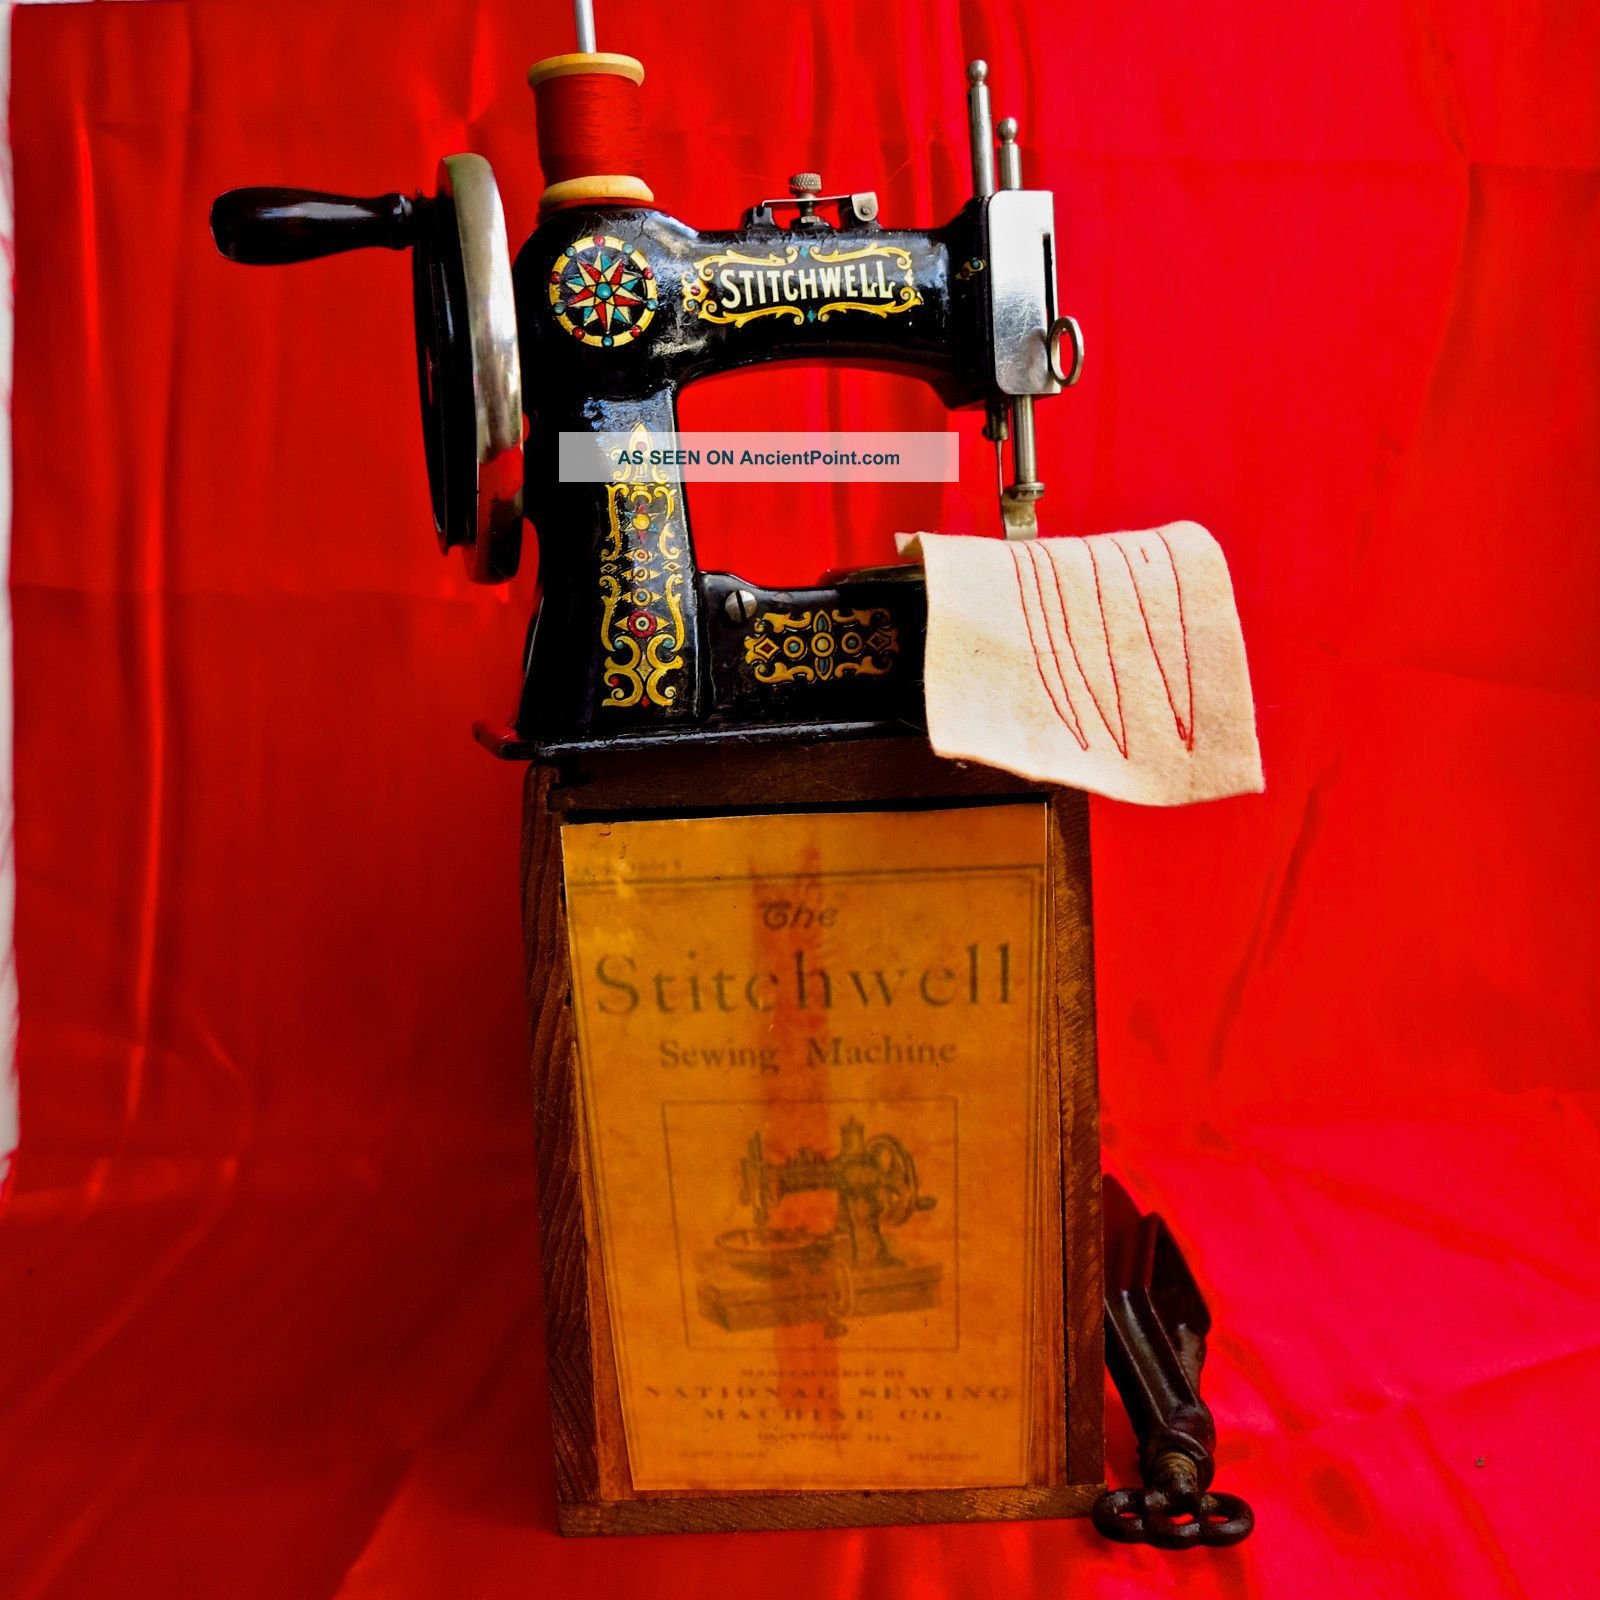 Antique Toy Sewing Machine Stitchwell It Sews Flawless, Sewing Machines photo